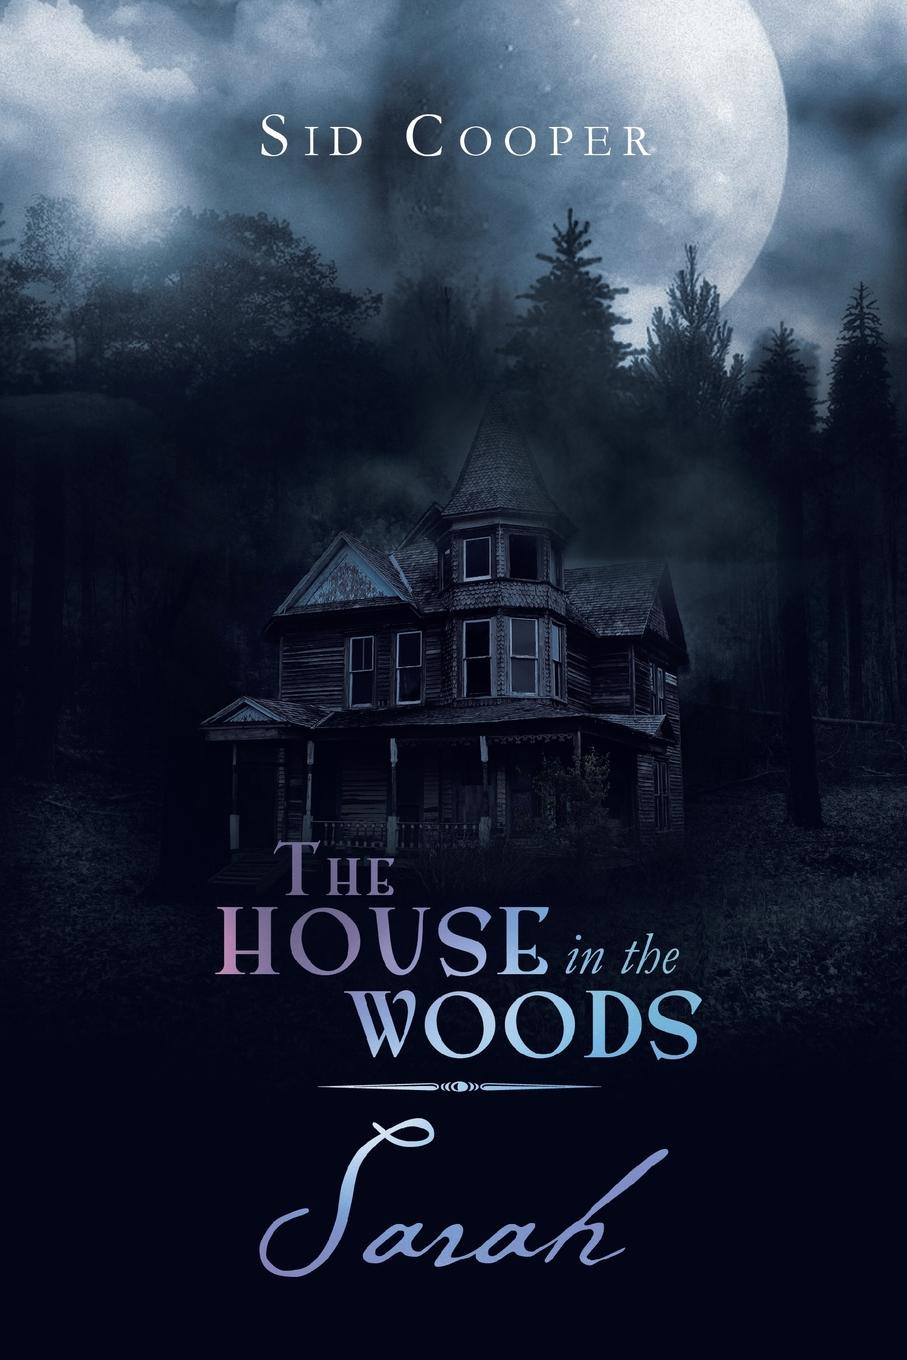 Sid Cooper The House in the Woods - Sarah цена 2017